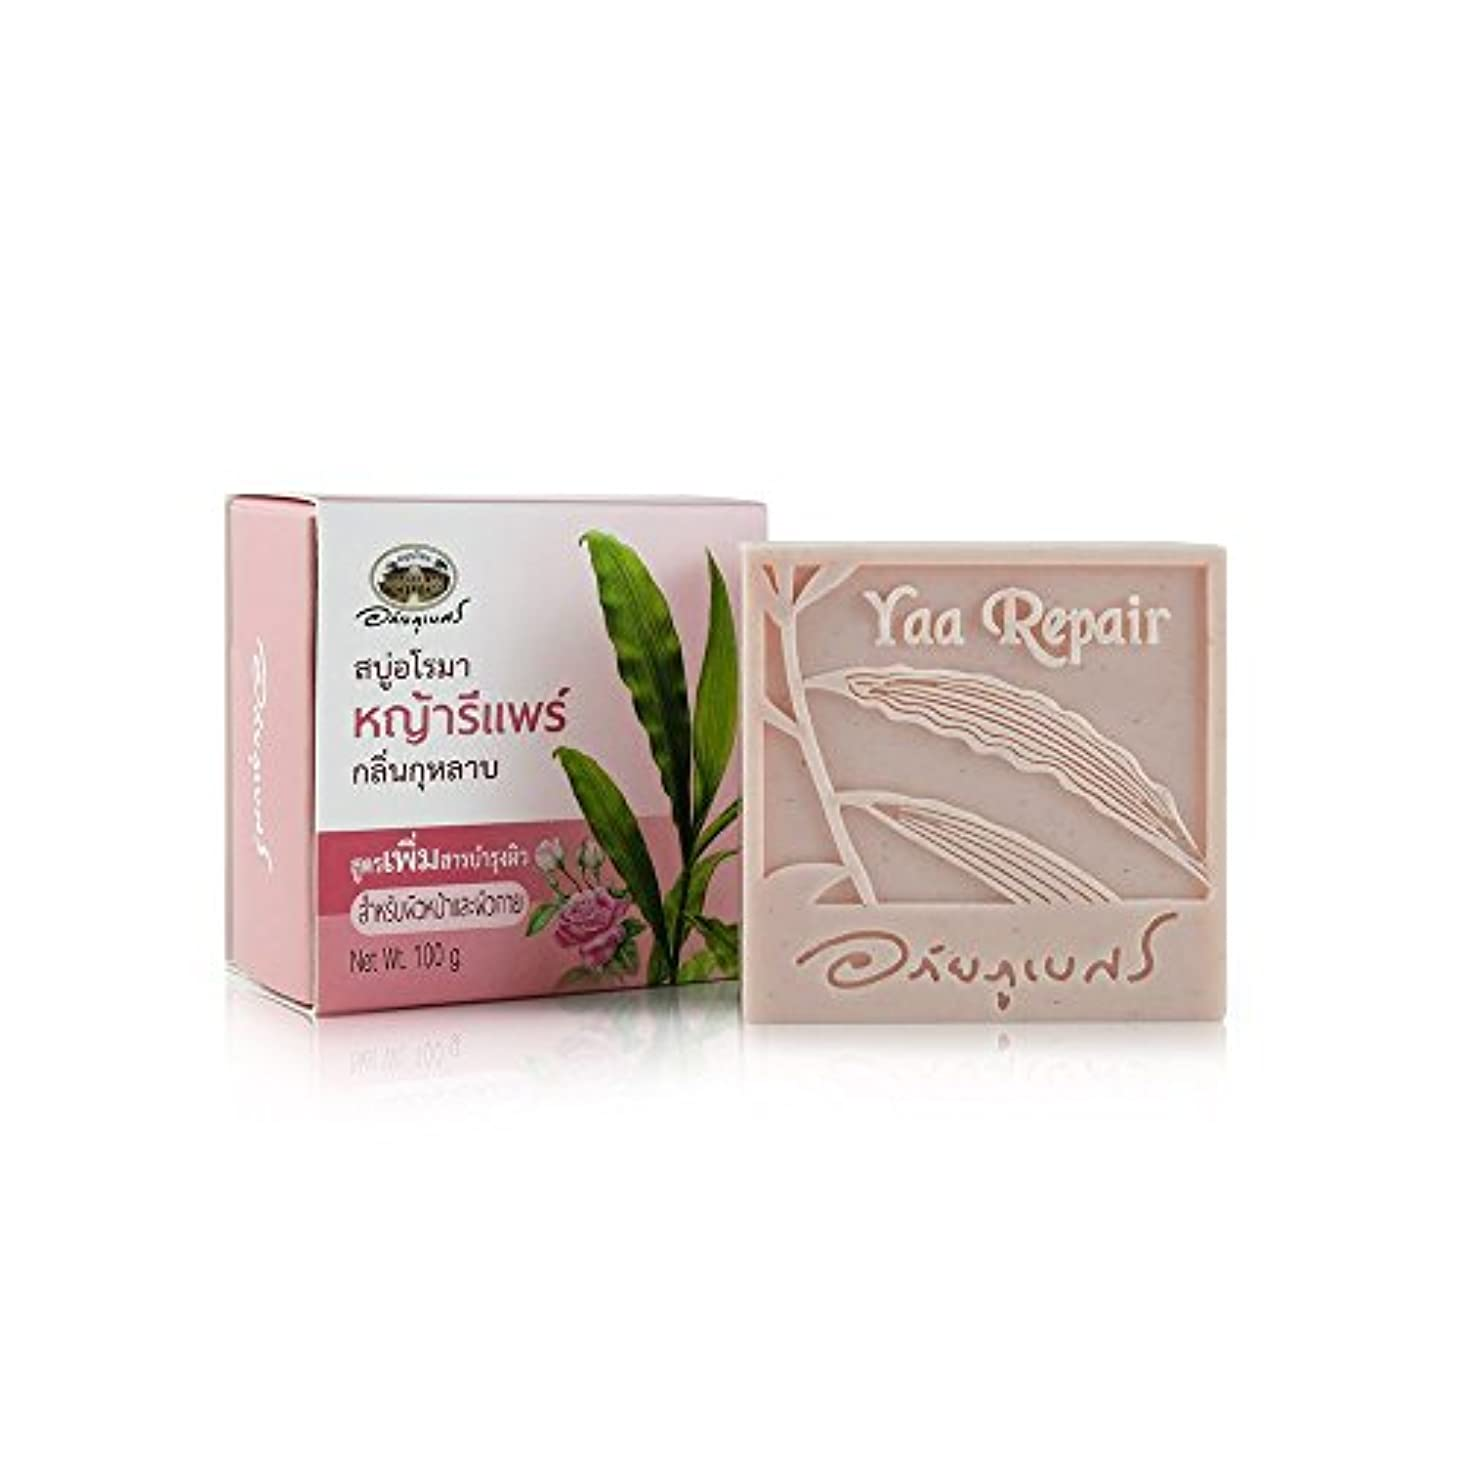 リースカンガルー織るAbhaibhubejhr Thai Aromatherapy With Rose Skin Care Formula Herbal Body Face Cleaning Soap 100g. Abhaibhubejhr...